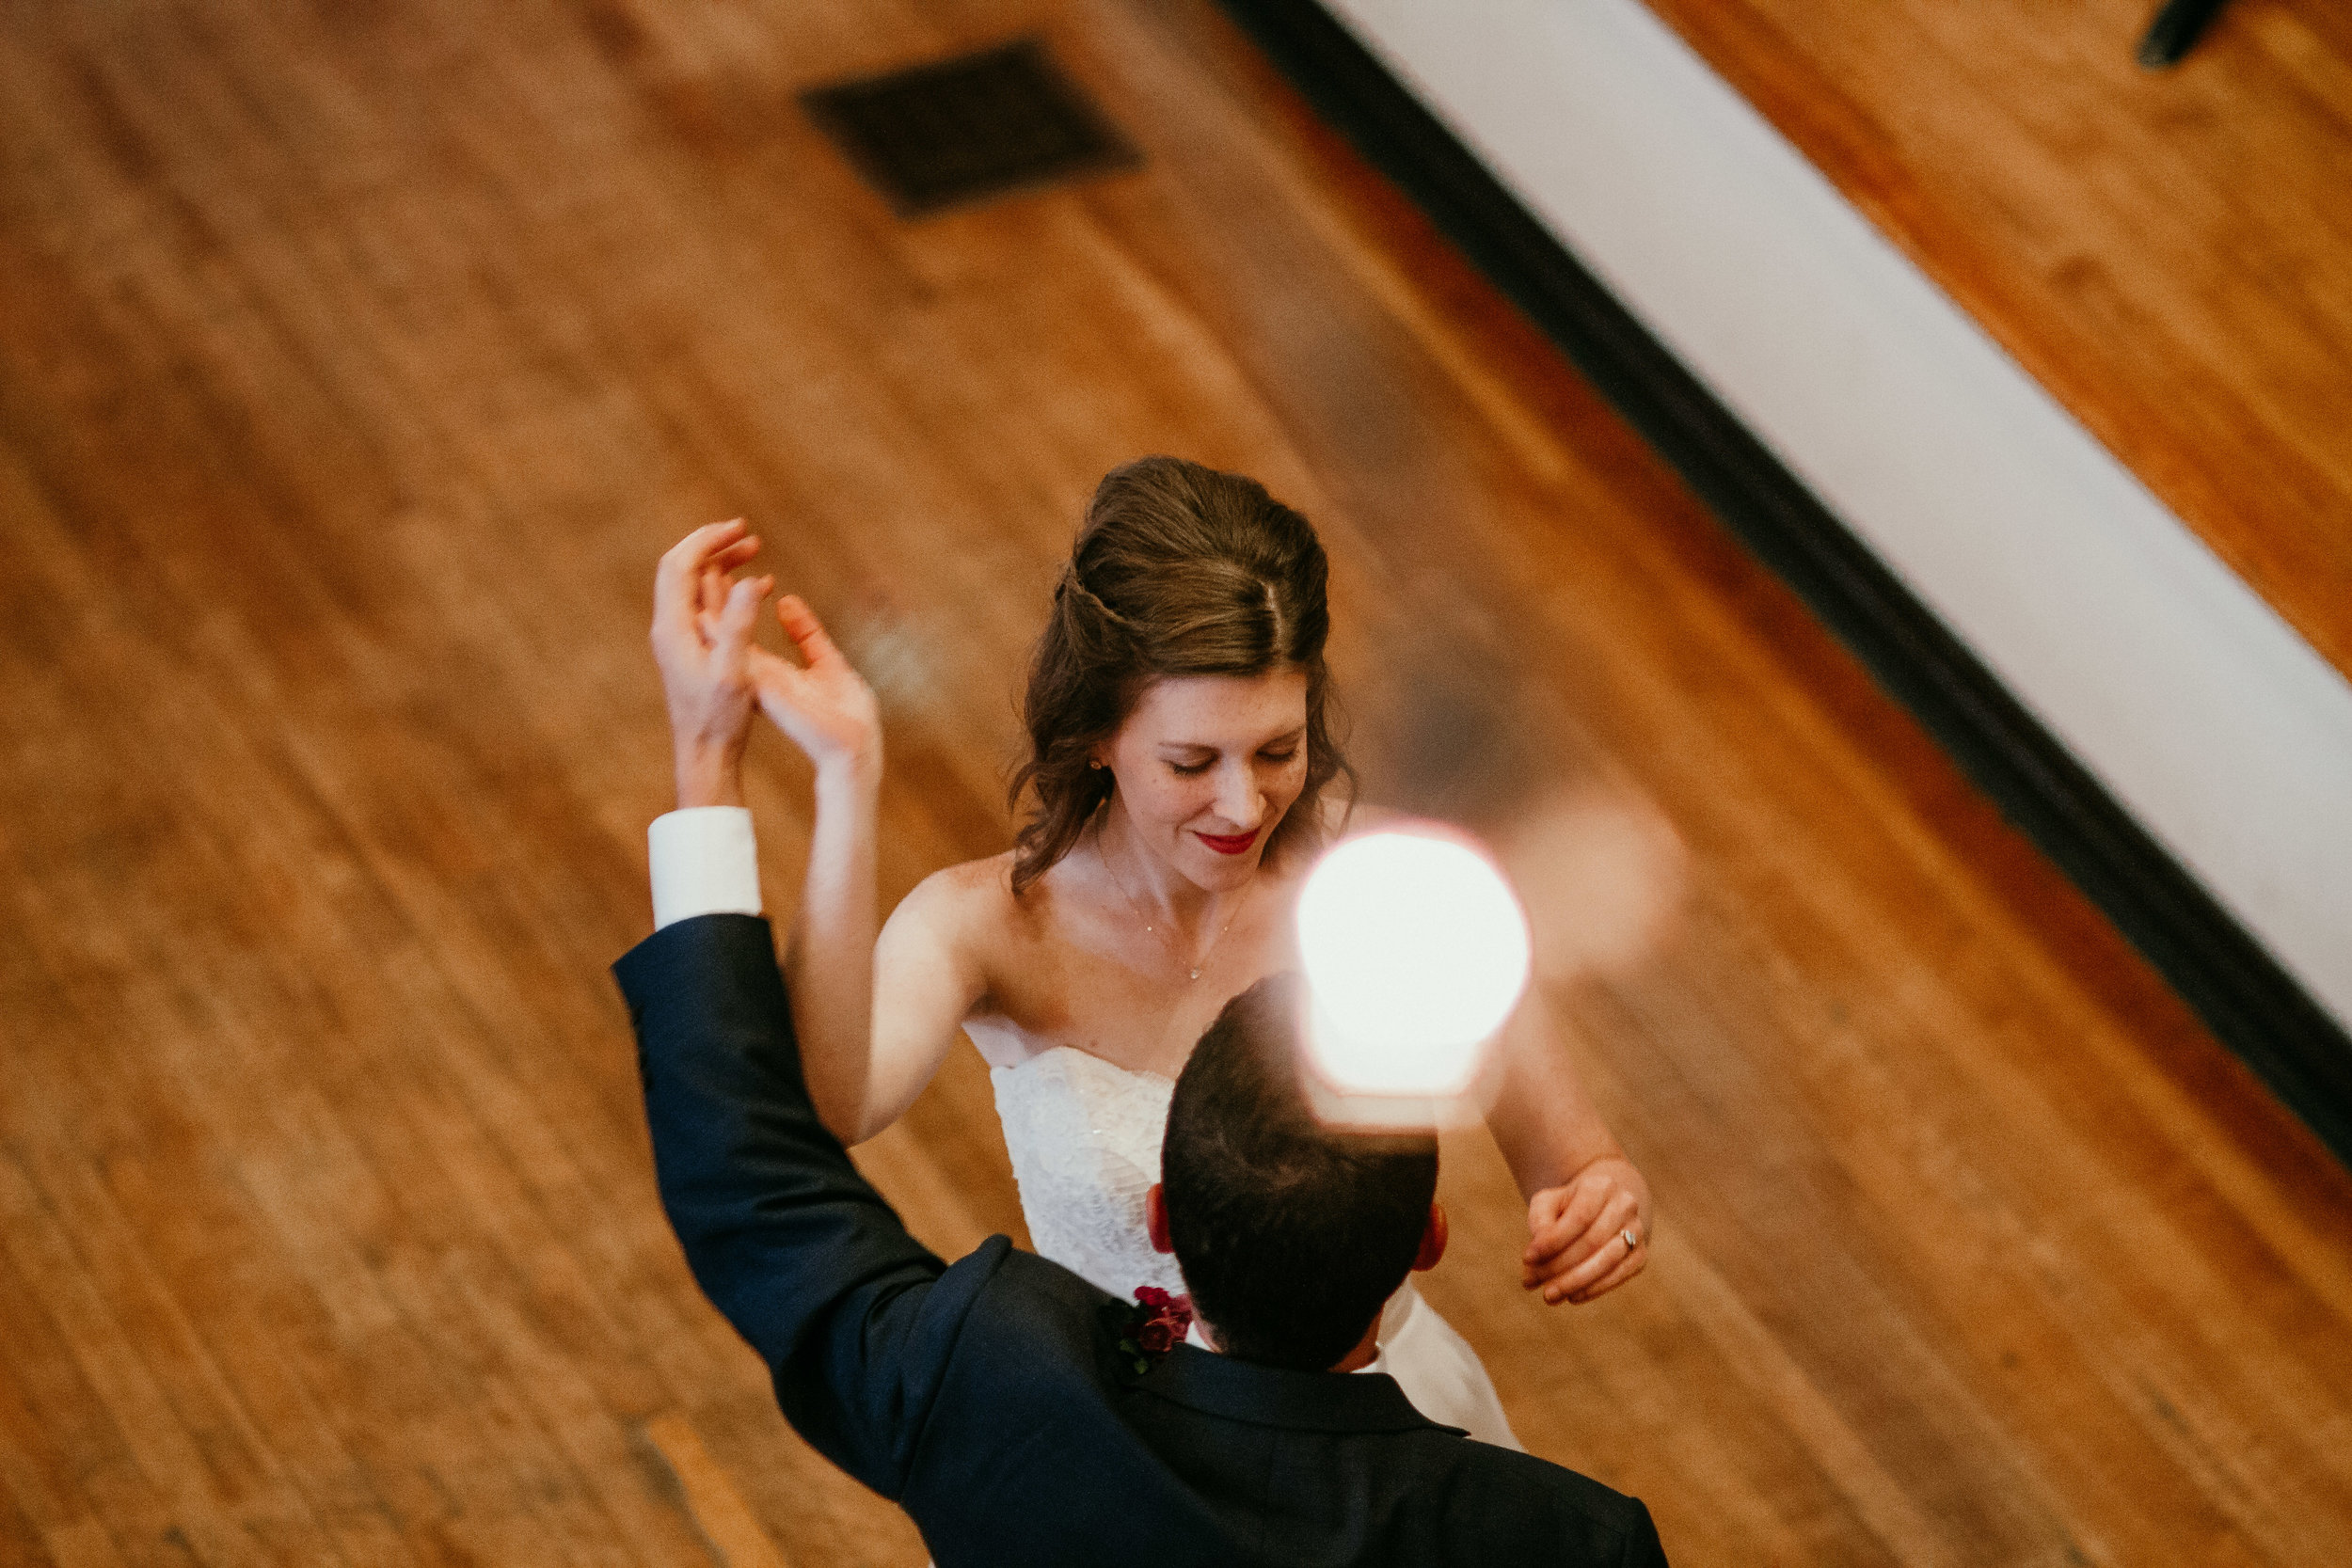 First Dance for bride and groom | Shelbie & Jospeh's Summer Love Story : Kansas City Wedding | Hanna Hill Photography